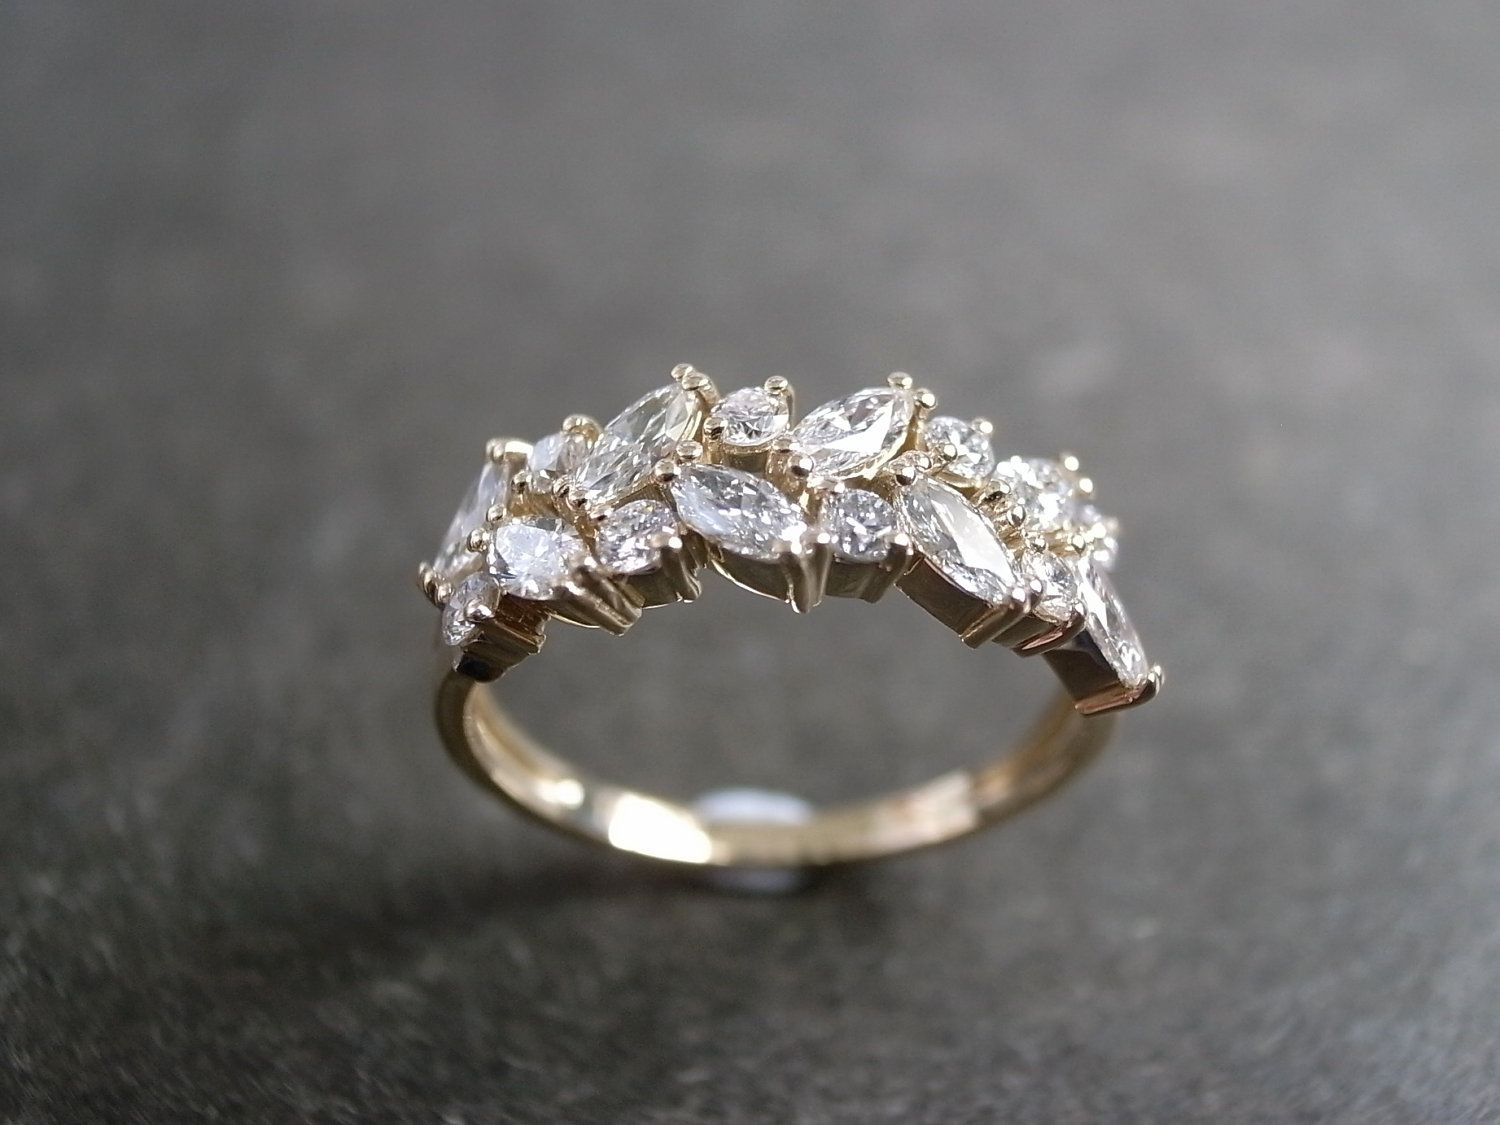 best 25+ diamond band rings ideas on pinterest | 3 wedding bands